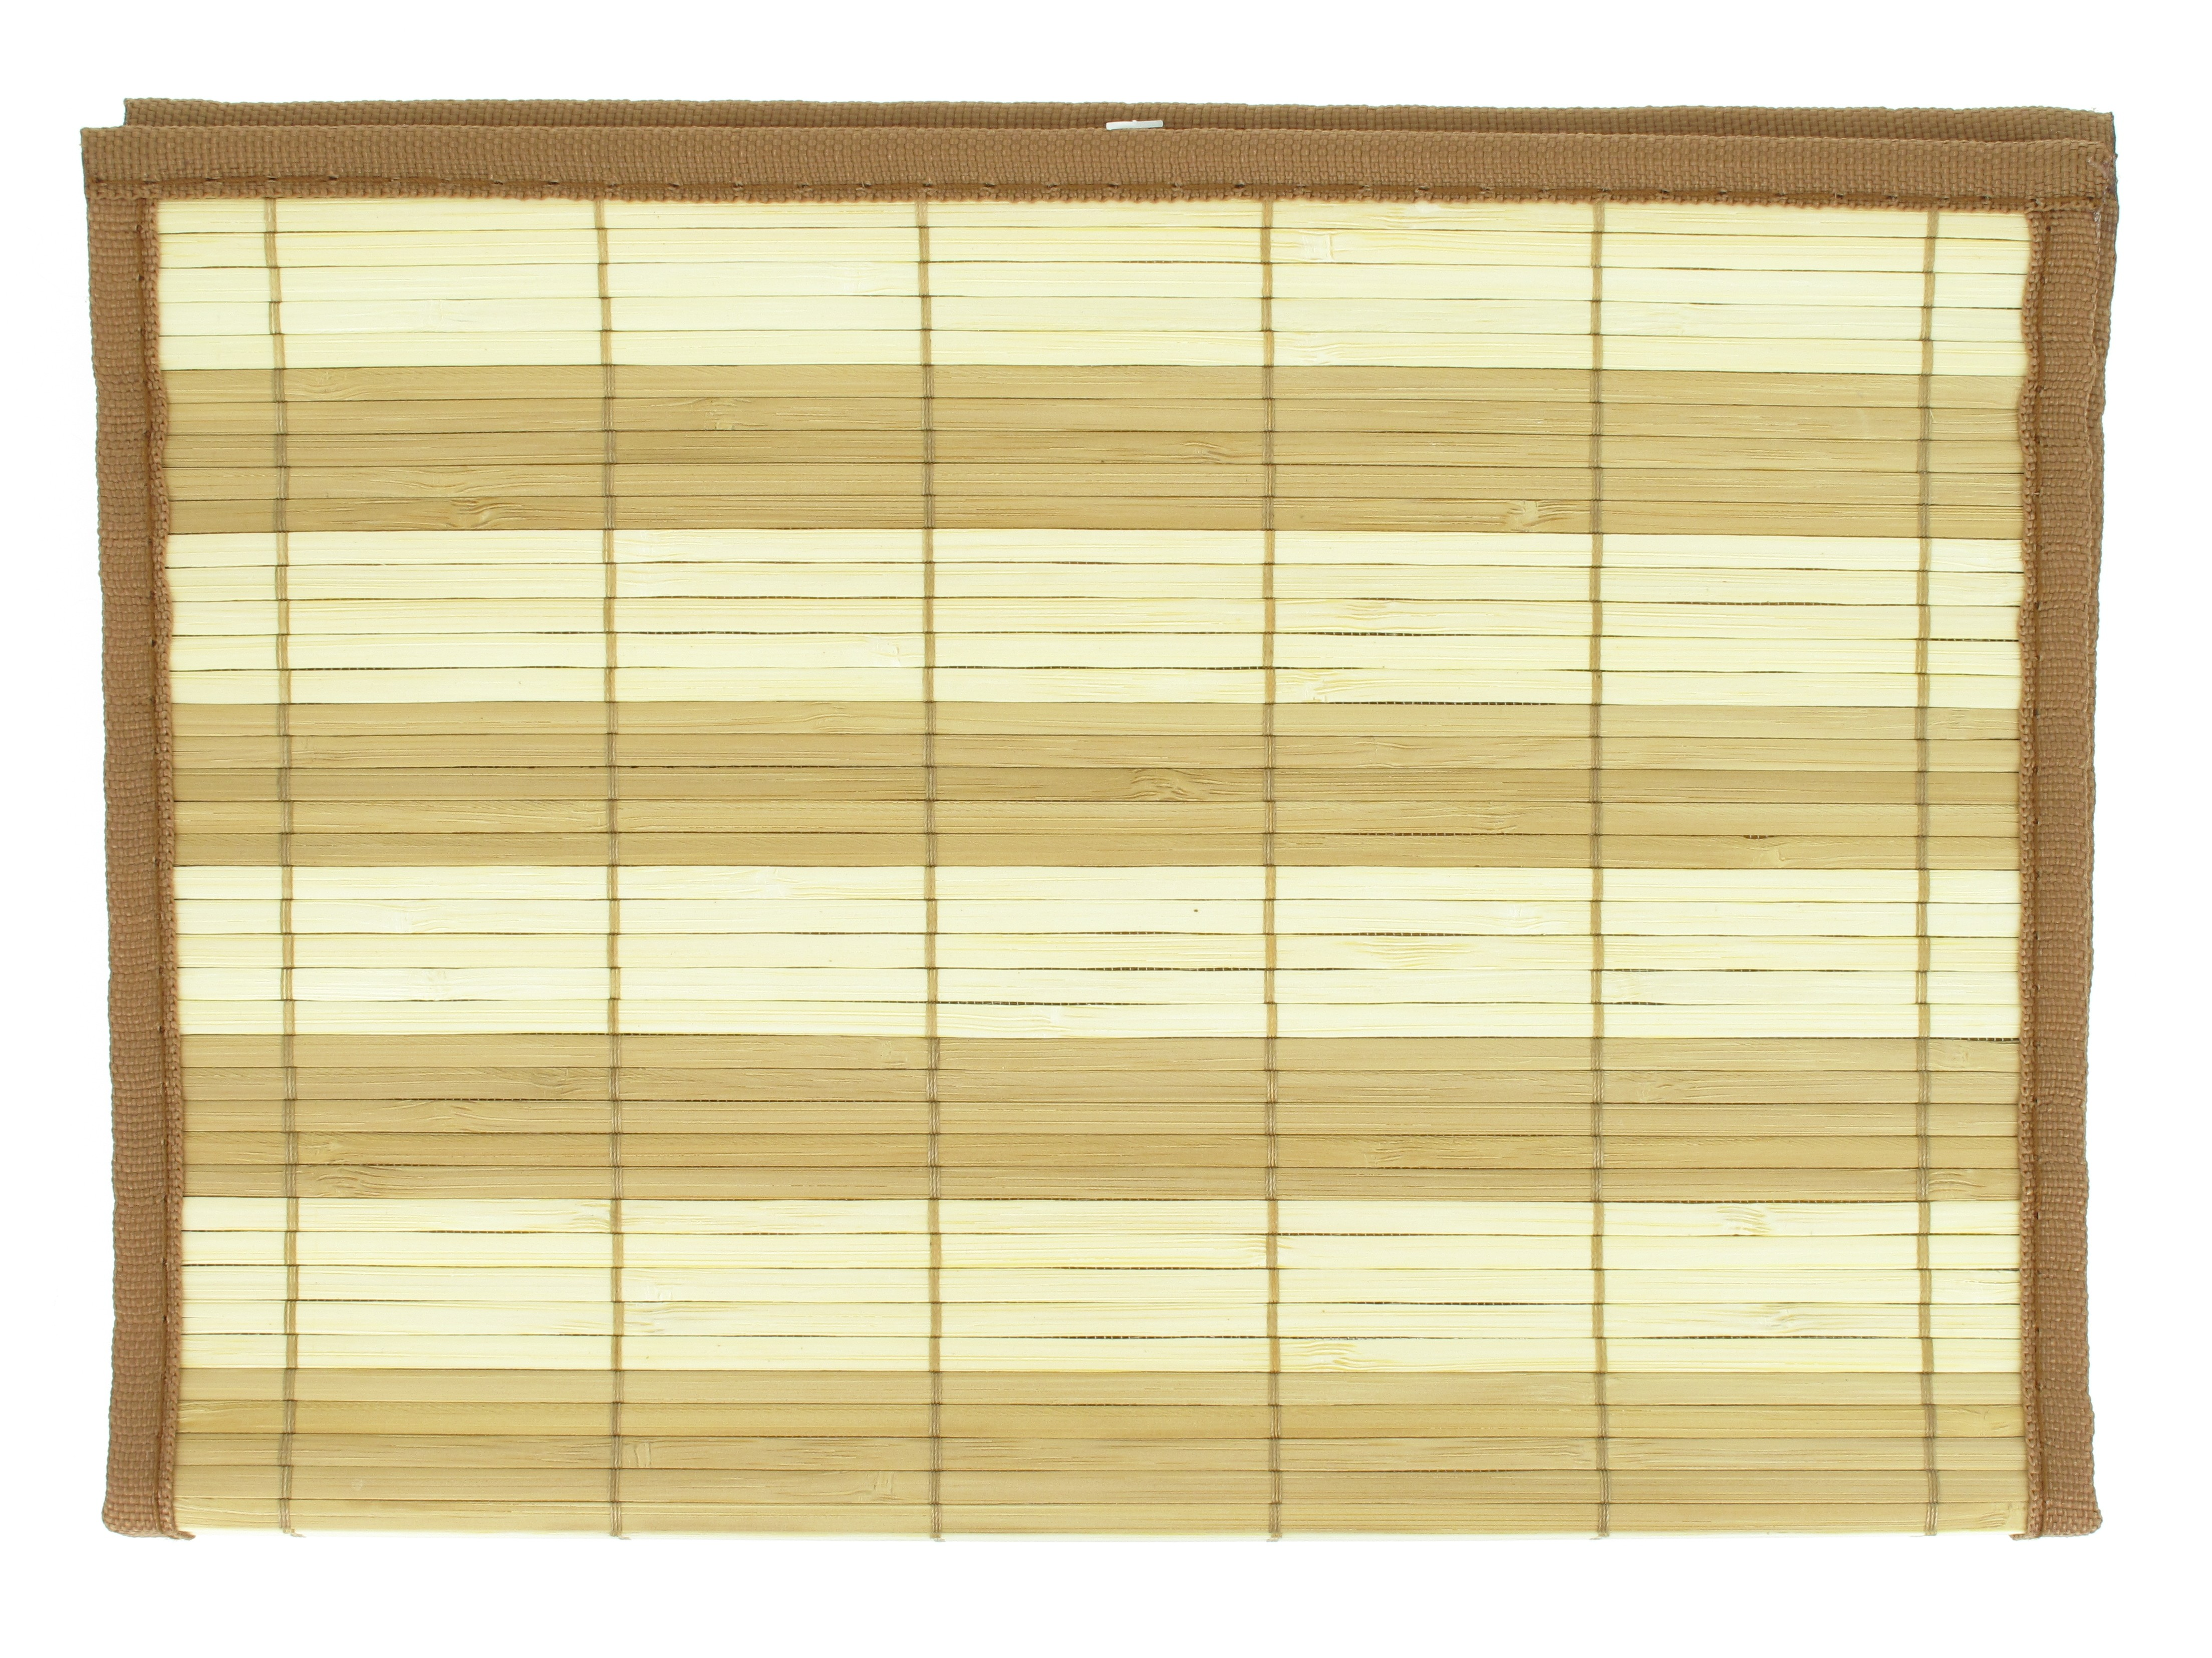 Bambou Stickersjaponais Set De Table Bambou Clair Du Japon Pour Une Table Orientale